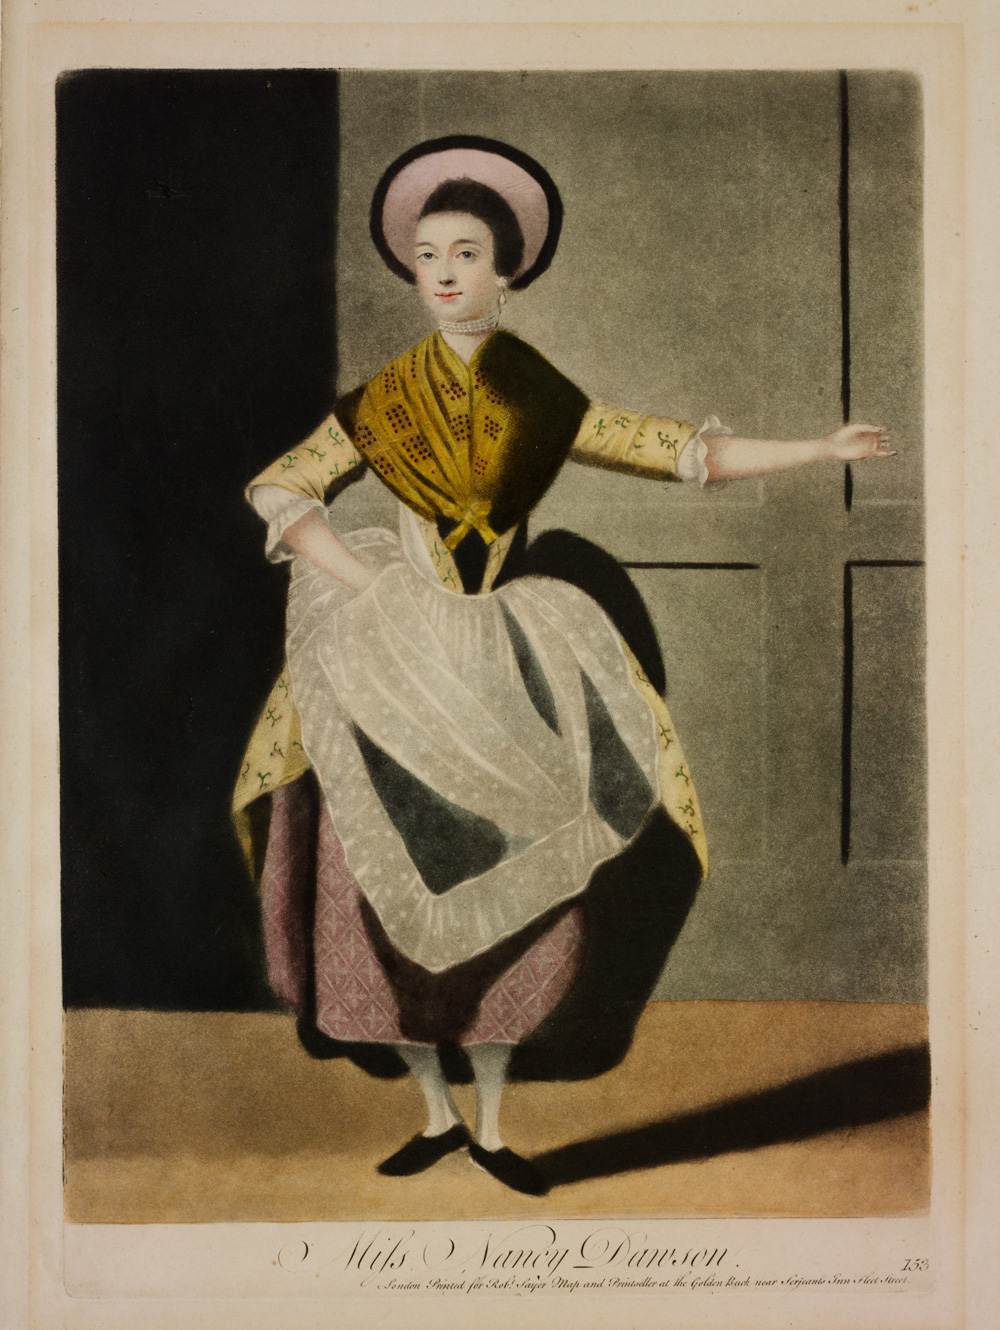 the origins of ballet victoria and albert museum nancy dawson hand coloured aquatint print london england early 19th century museum no e 4968 1968